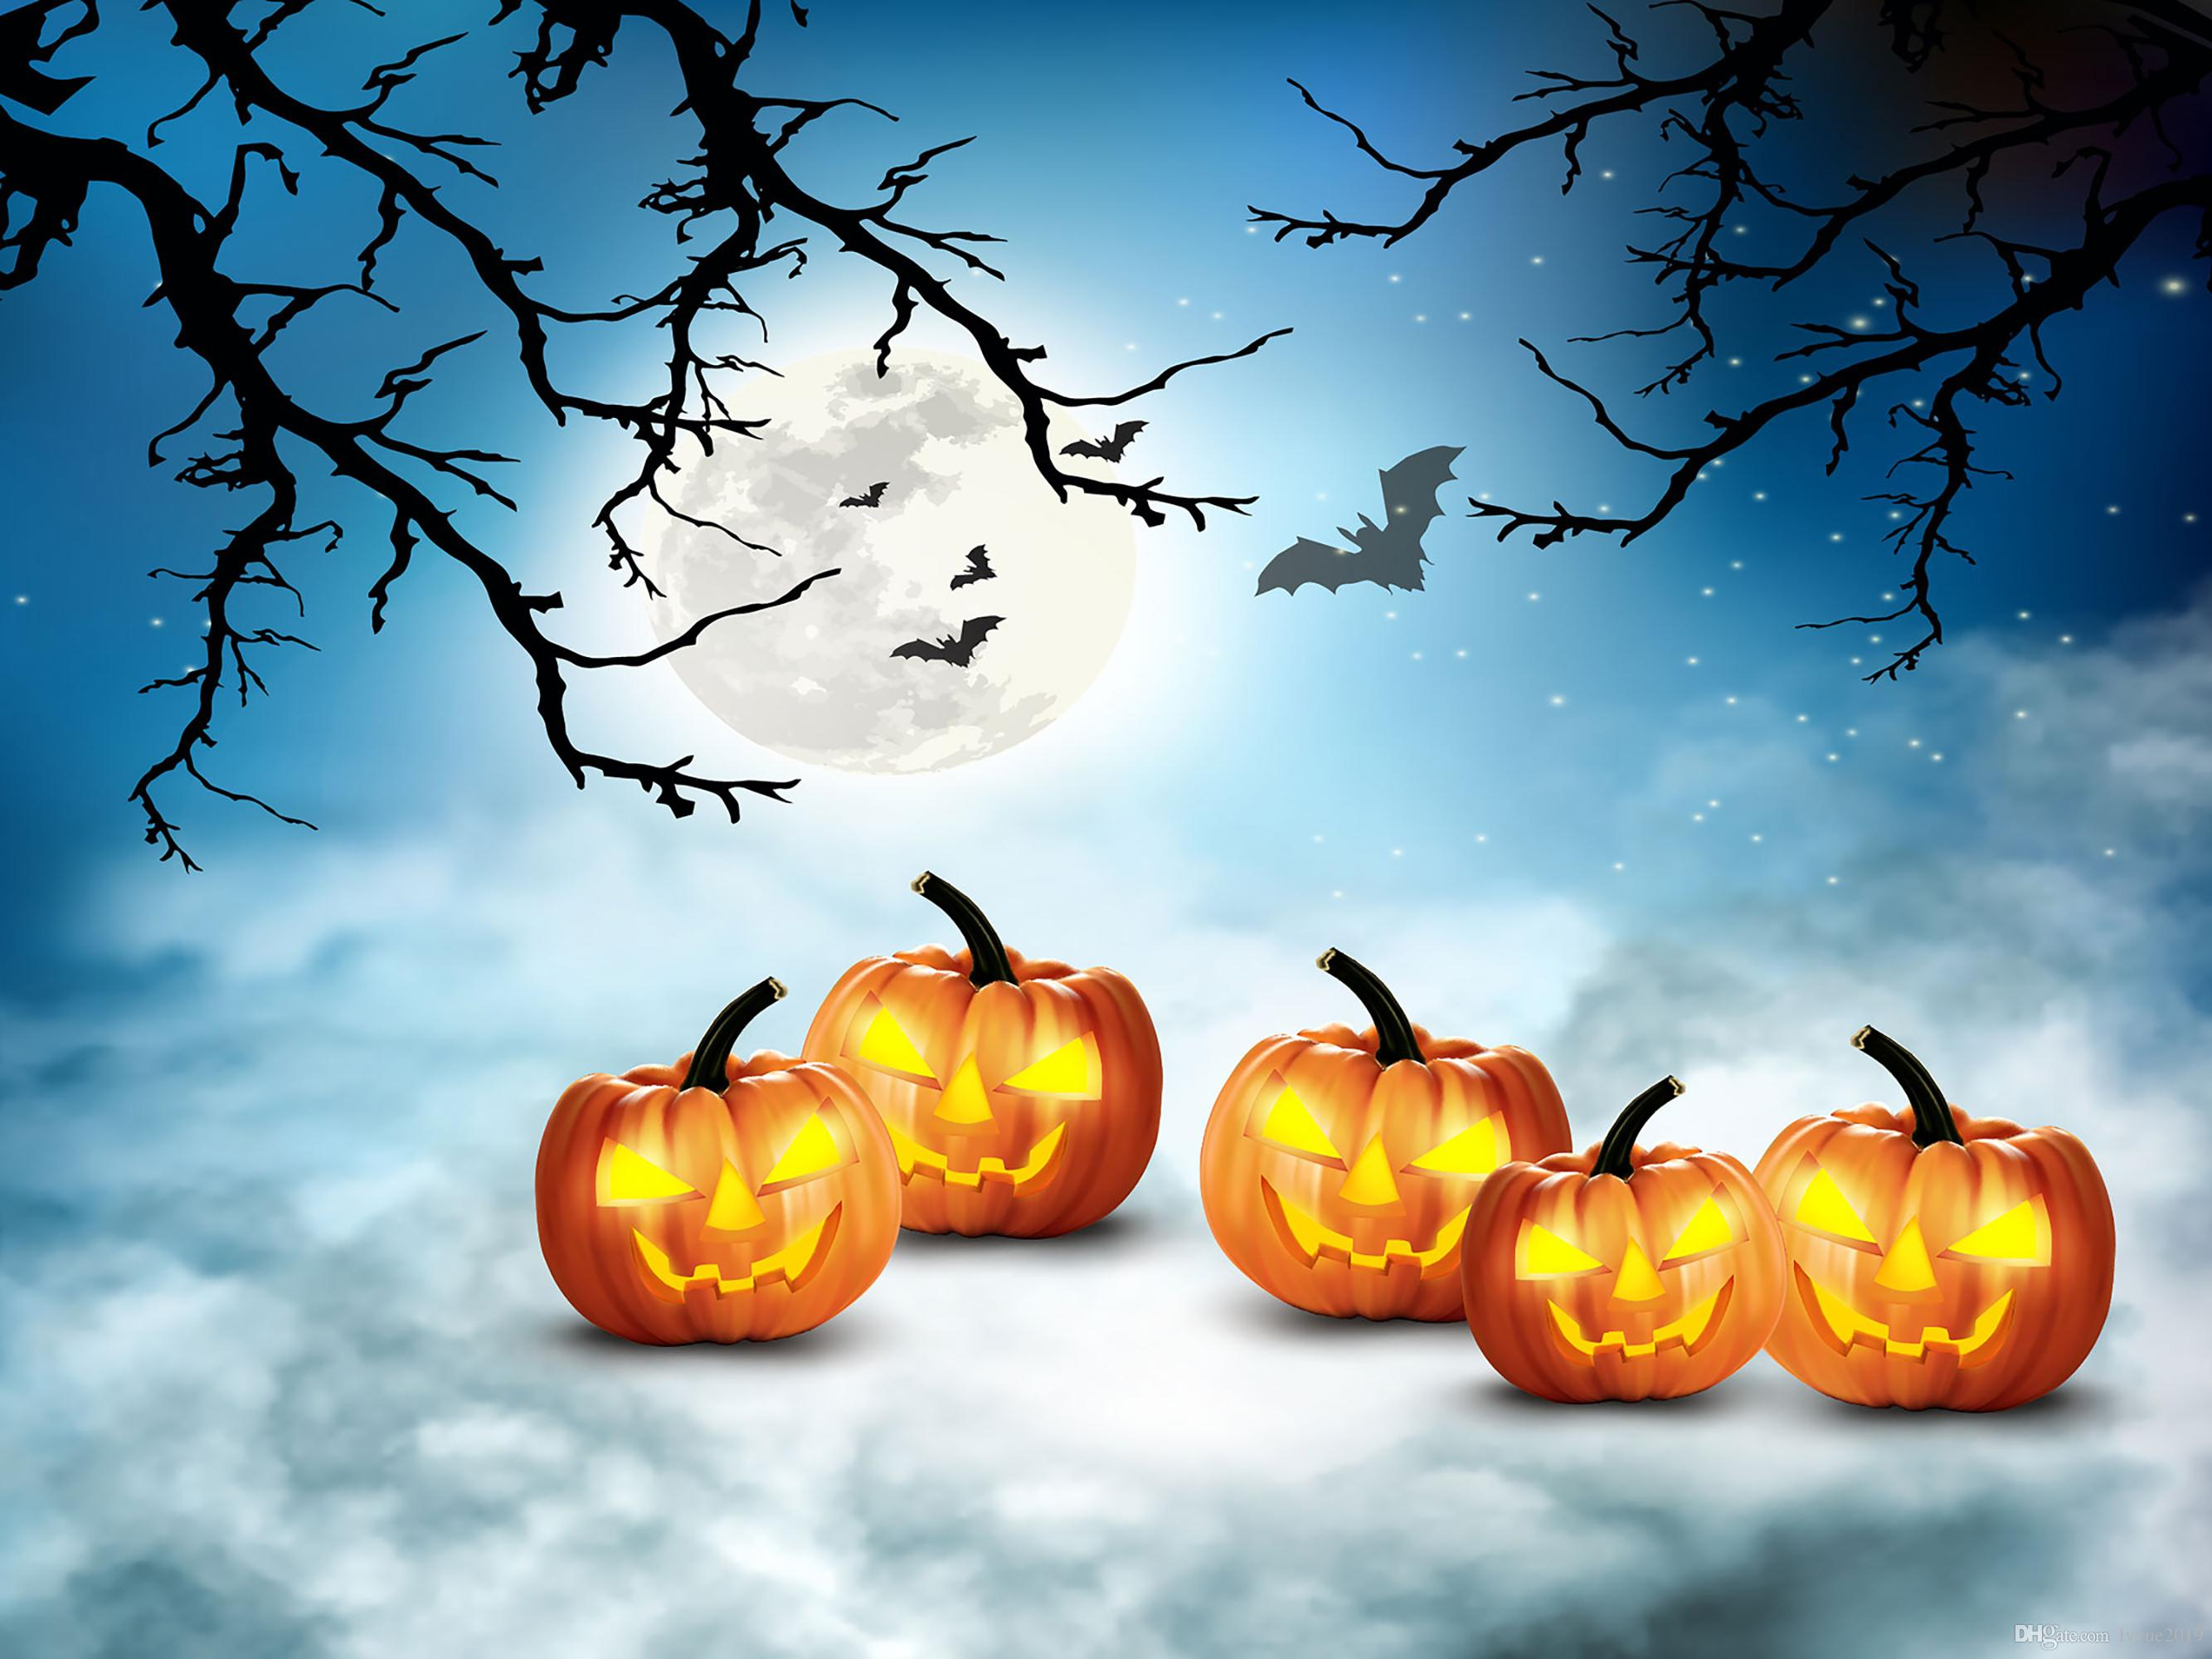 Sep 03, 2021· halloween 2021 is a holiday celebrated annually on october 31 in the united states and throughout the world. 2021 Halloween Night Sky Full Moon Vinyl Photography Backdrops Branches Pumpkin Bat Photo Booth ...